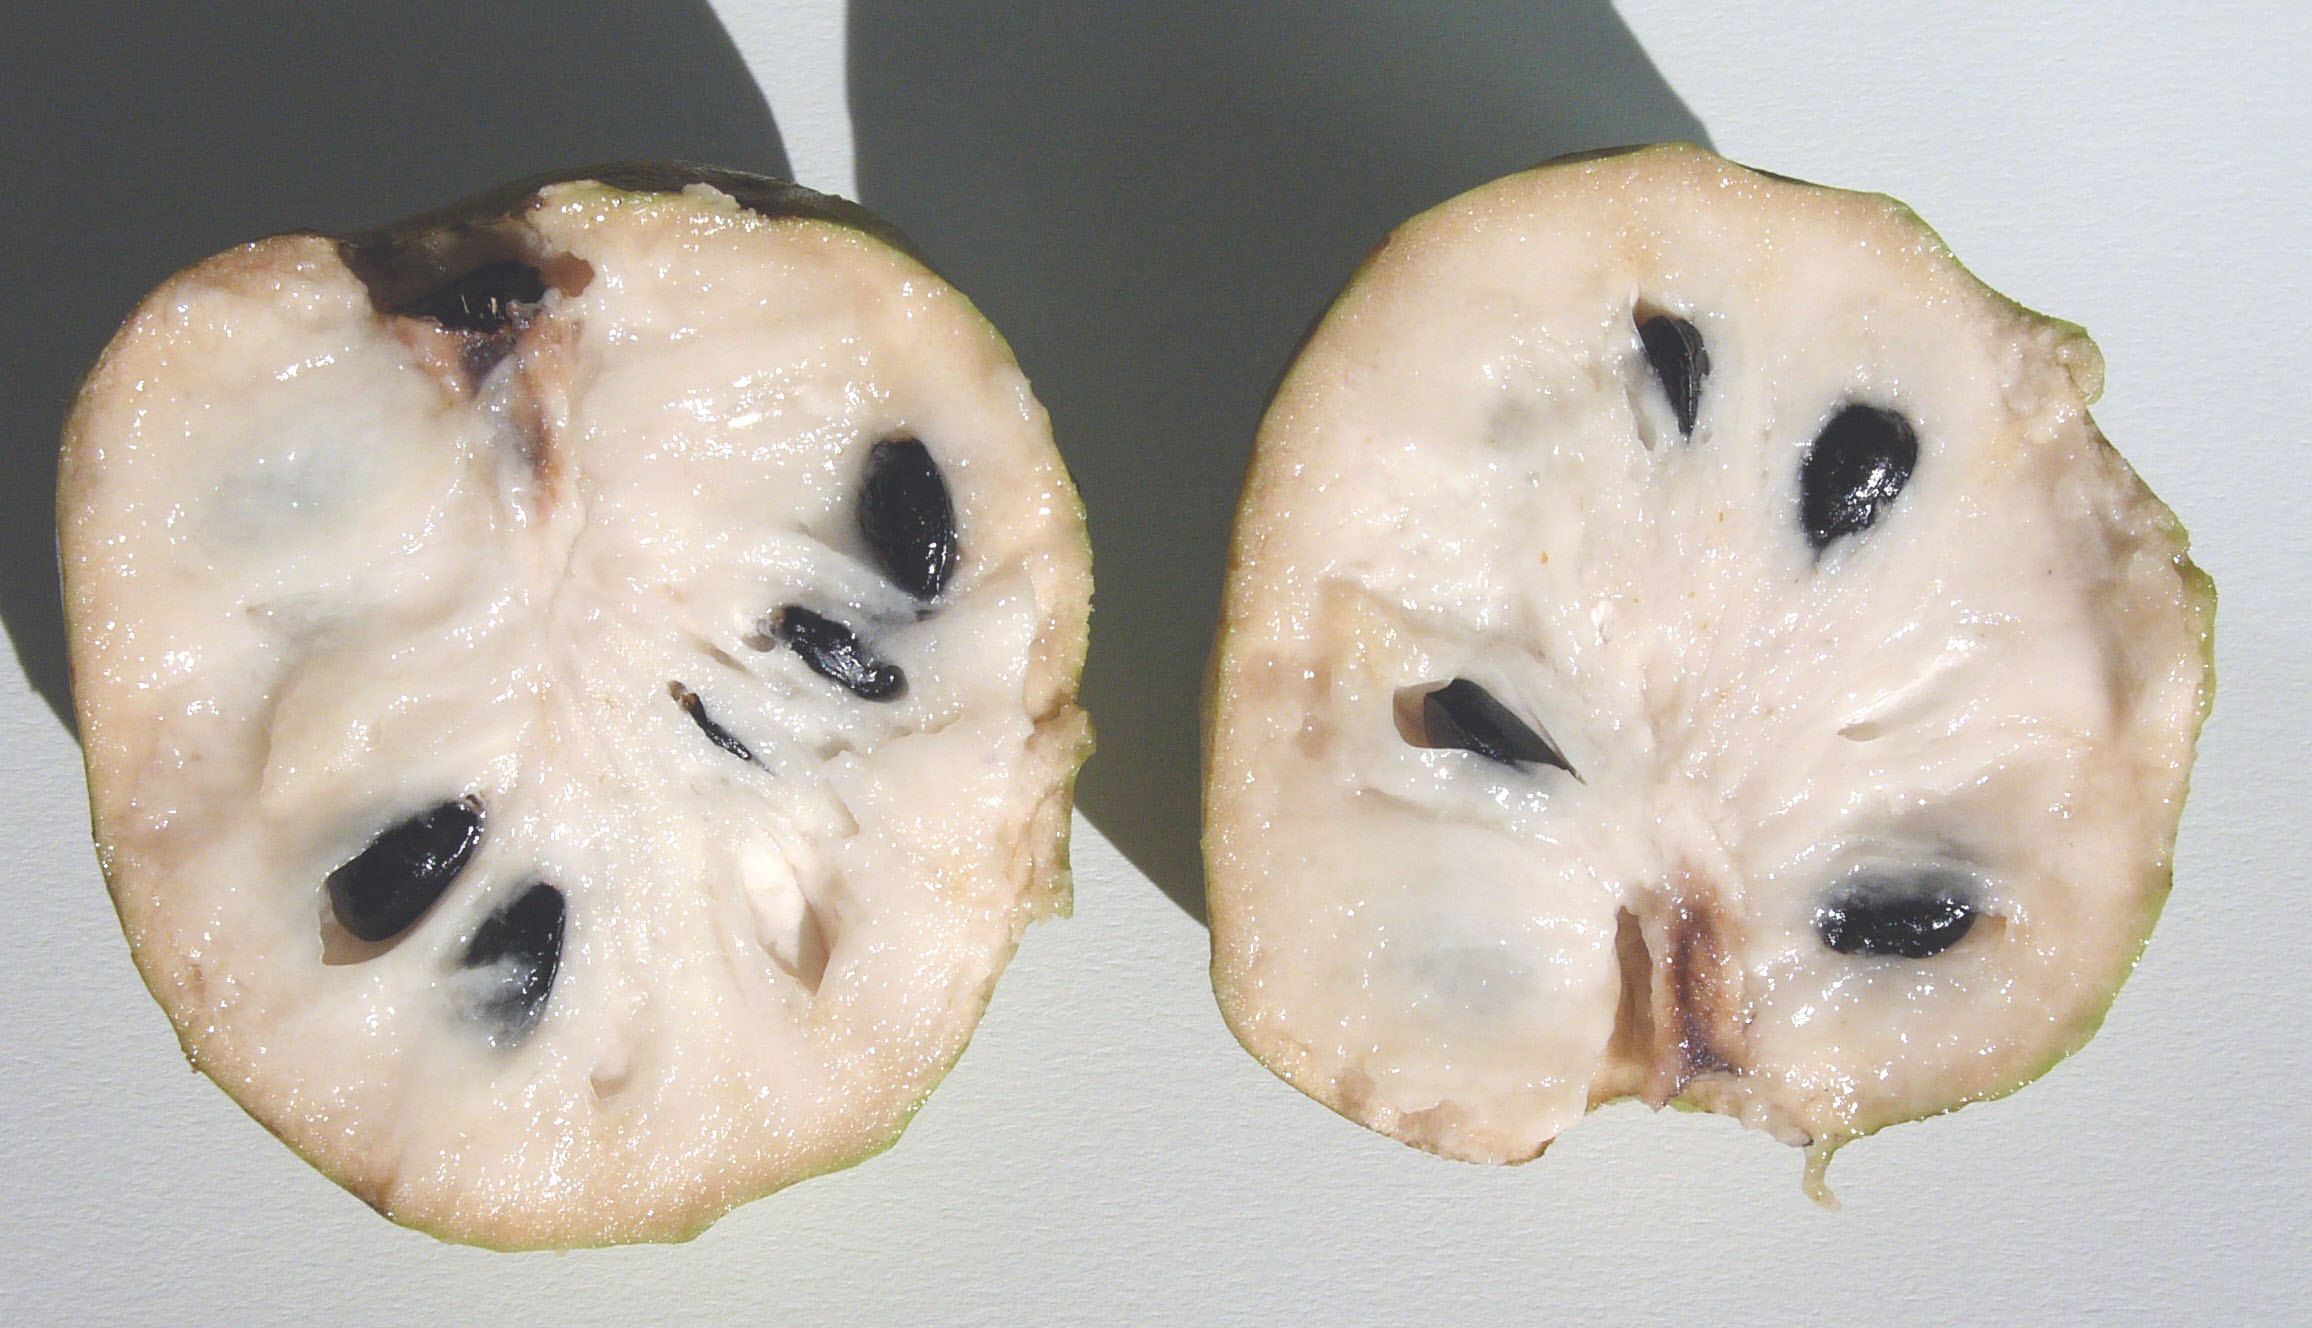 Cherimoya cut in half